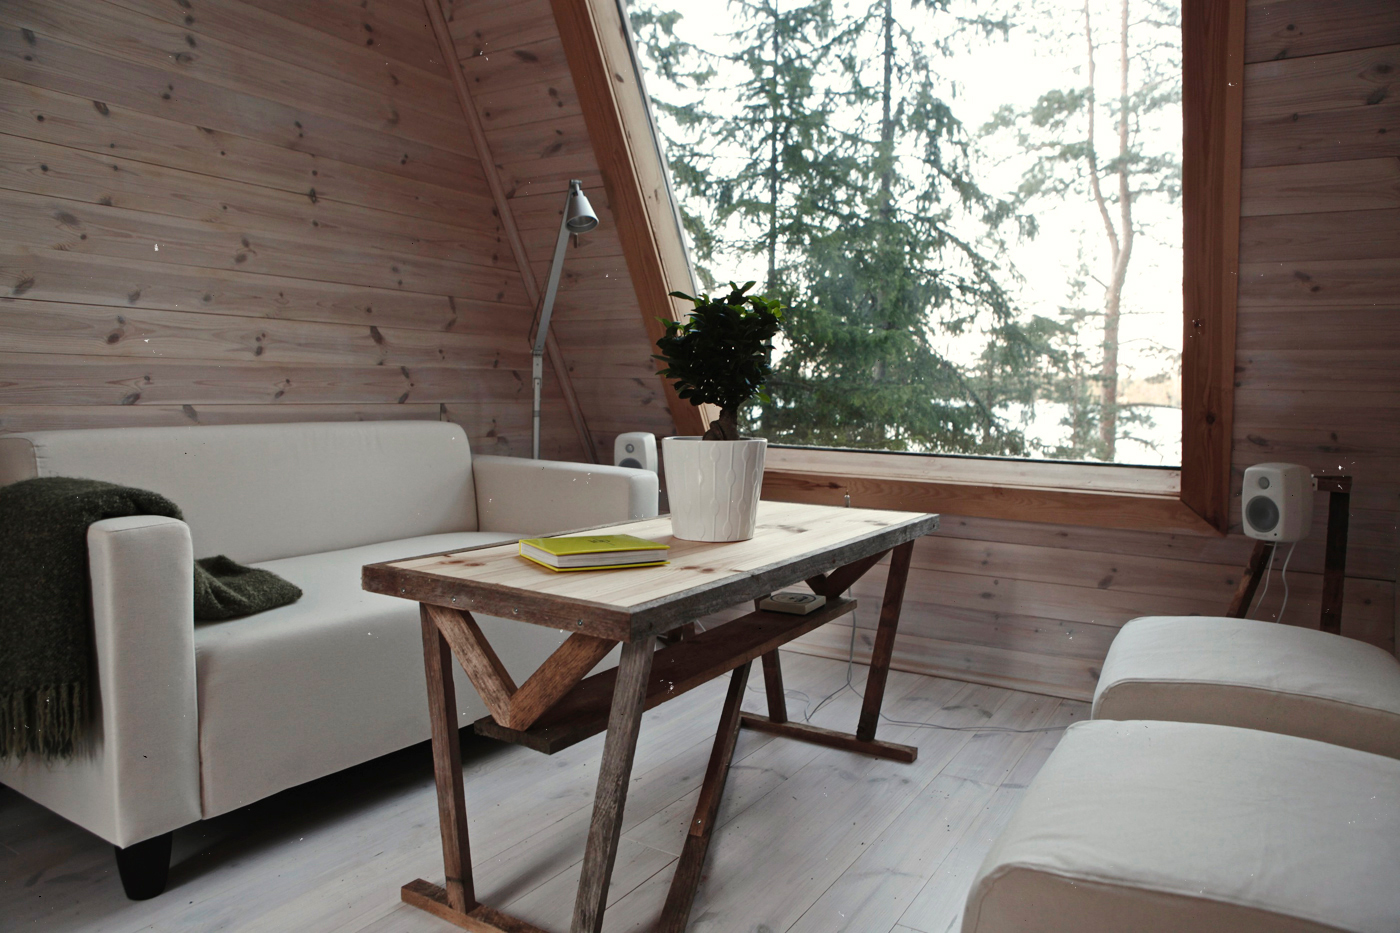 A Tiny House with a Minimalist Living Room in the Heart of Finland minimalist living room A Tiny House with a Minimalist Living Room in the Heart of Finland Nido A Tiny House that Makes the Best of Eco Design 4